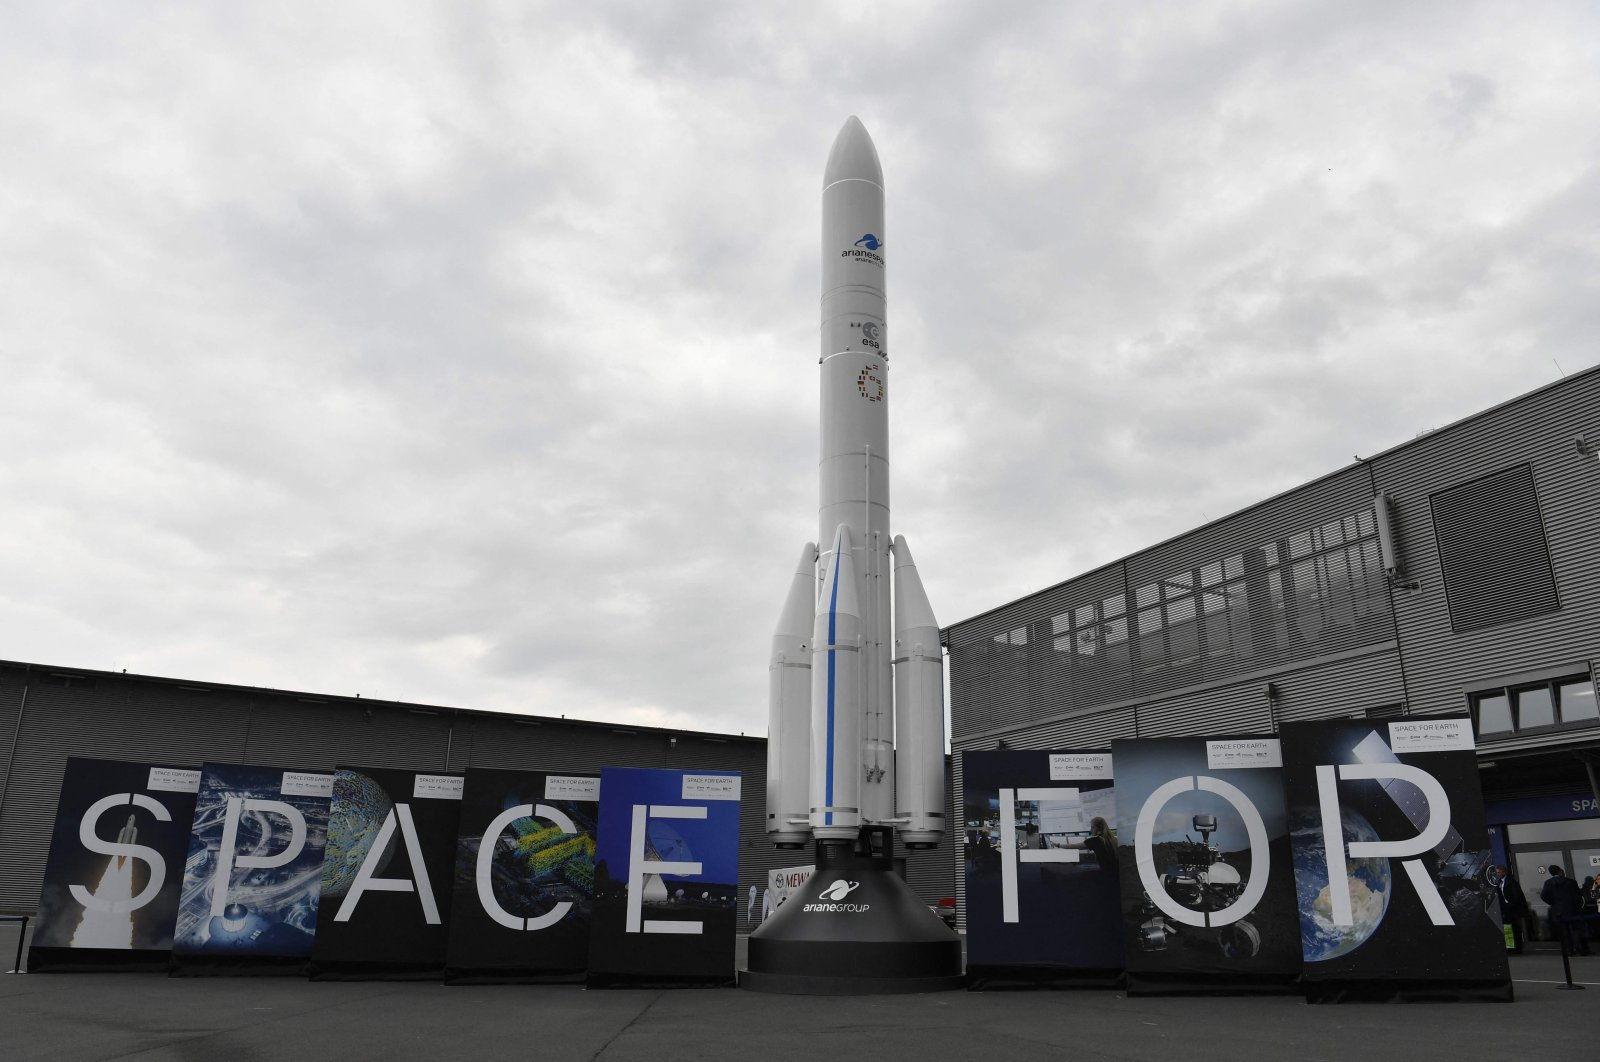 A model of an Ariane 6 rocket, a launch vehicle under development by the European Space Agency (ESA), is on display at the International Aerospace Exhibition, ILA Berlin, Germany, April 25, 2018. (AFP Photo)